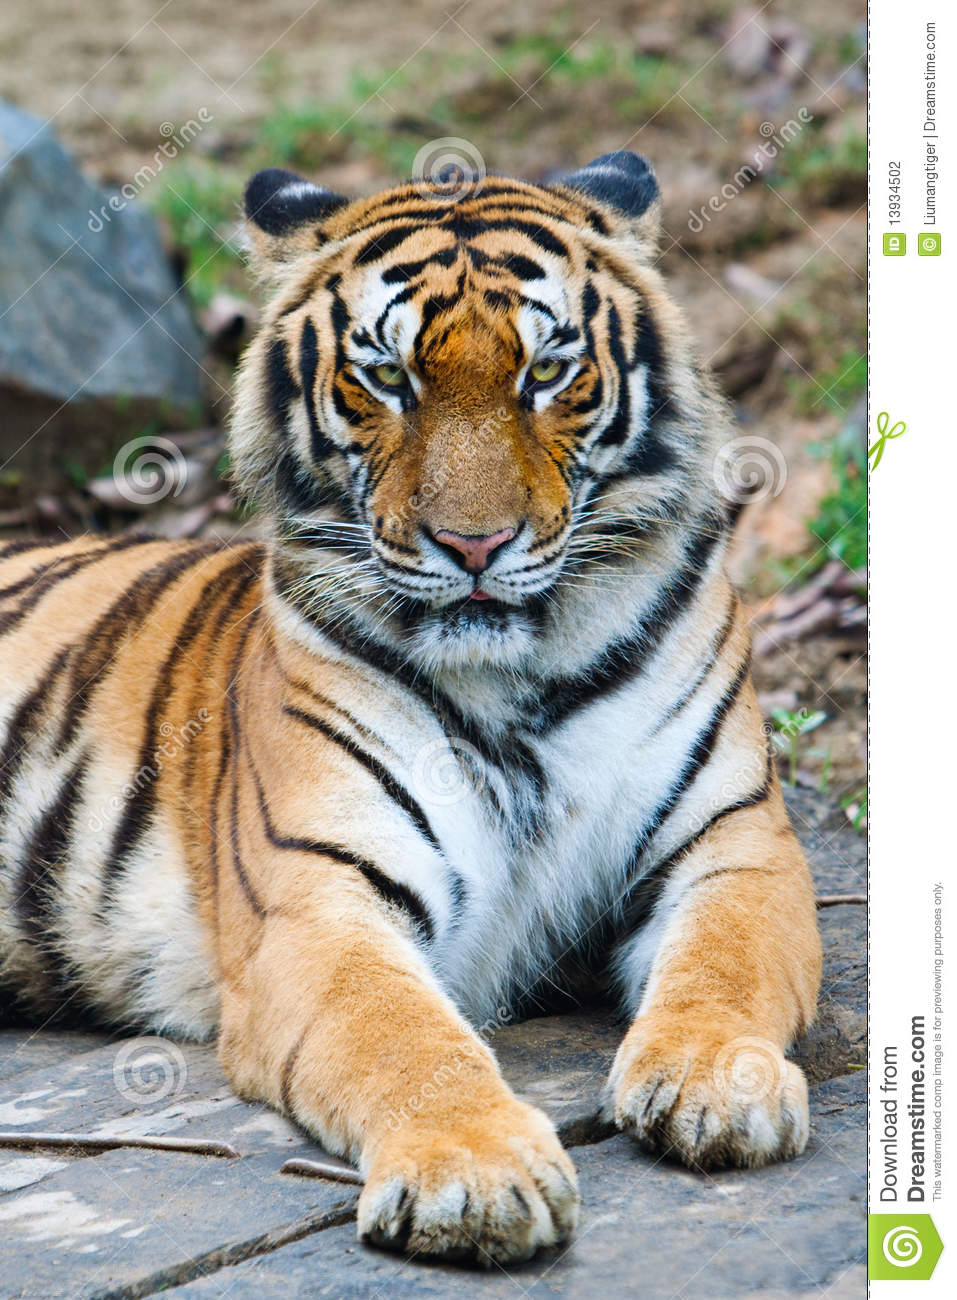 South China Tiger Stock Photography - Image: 13934502